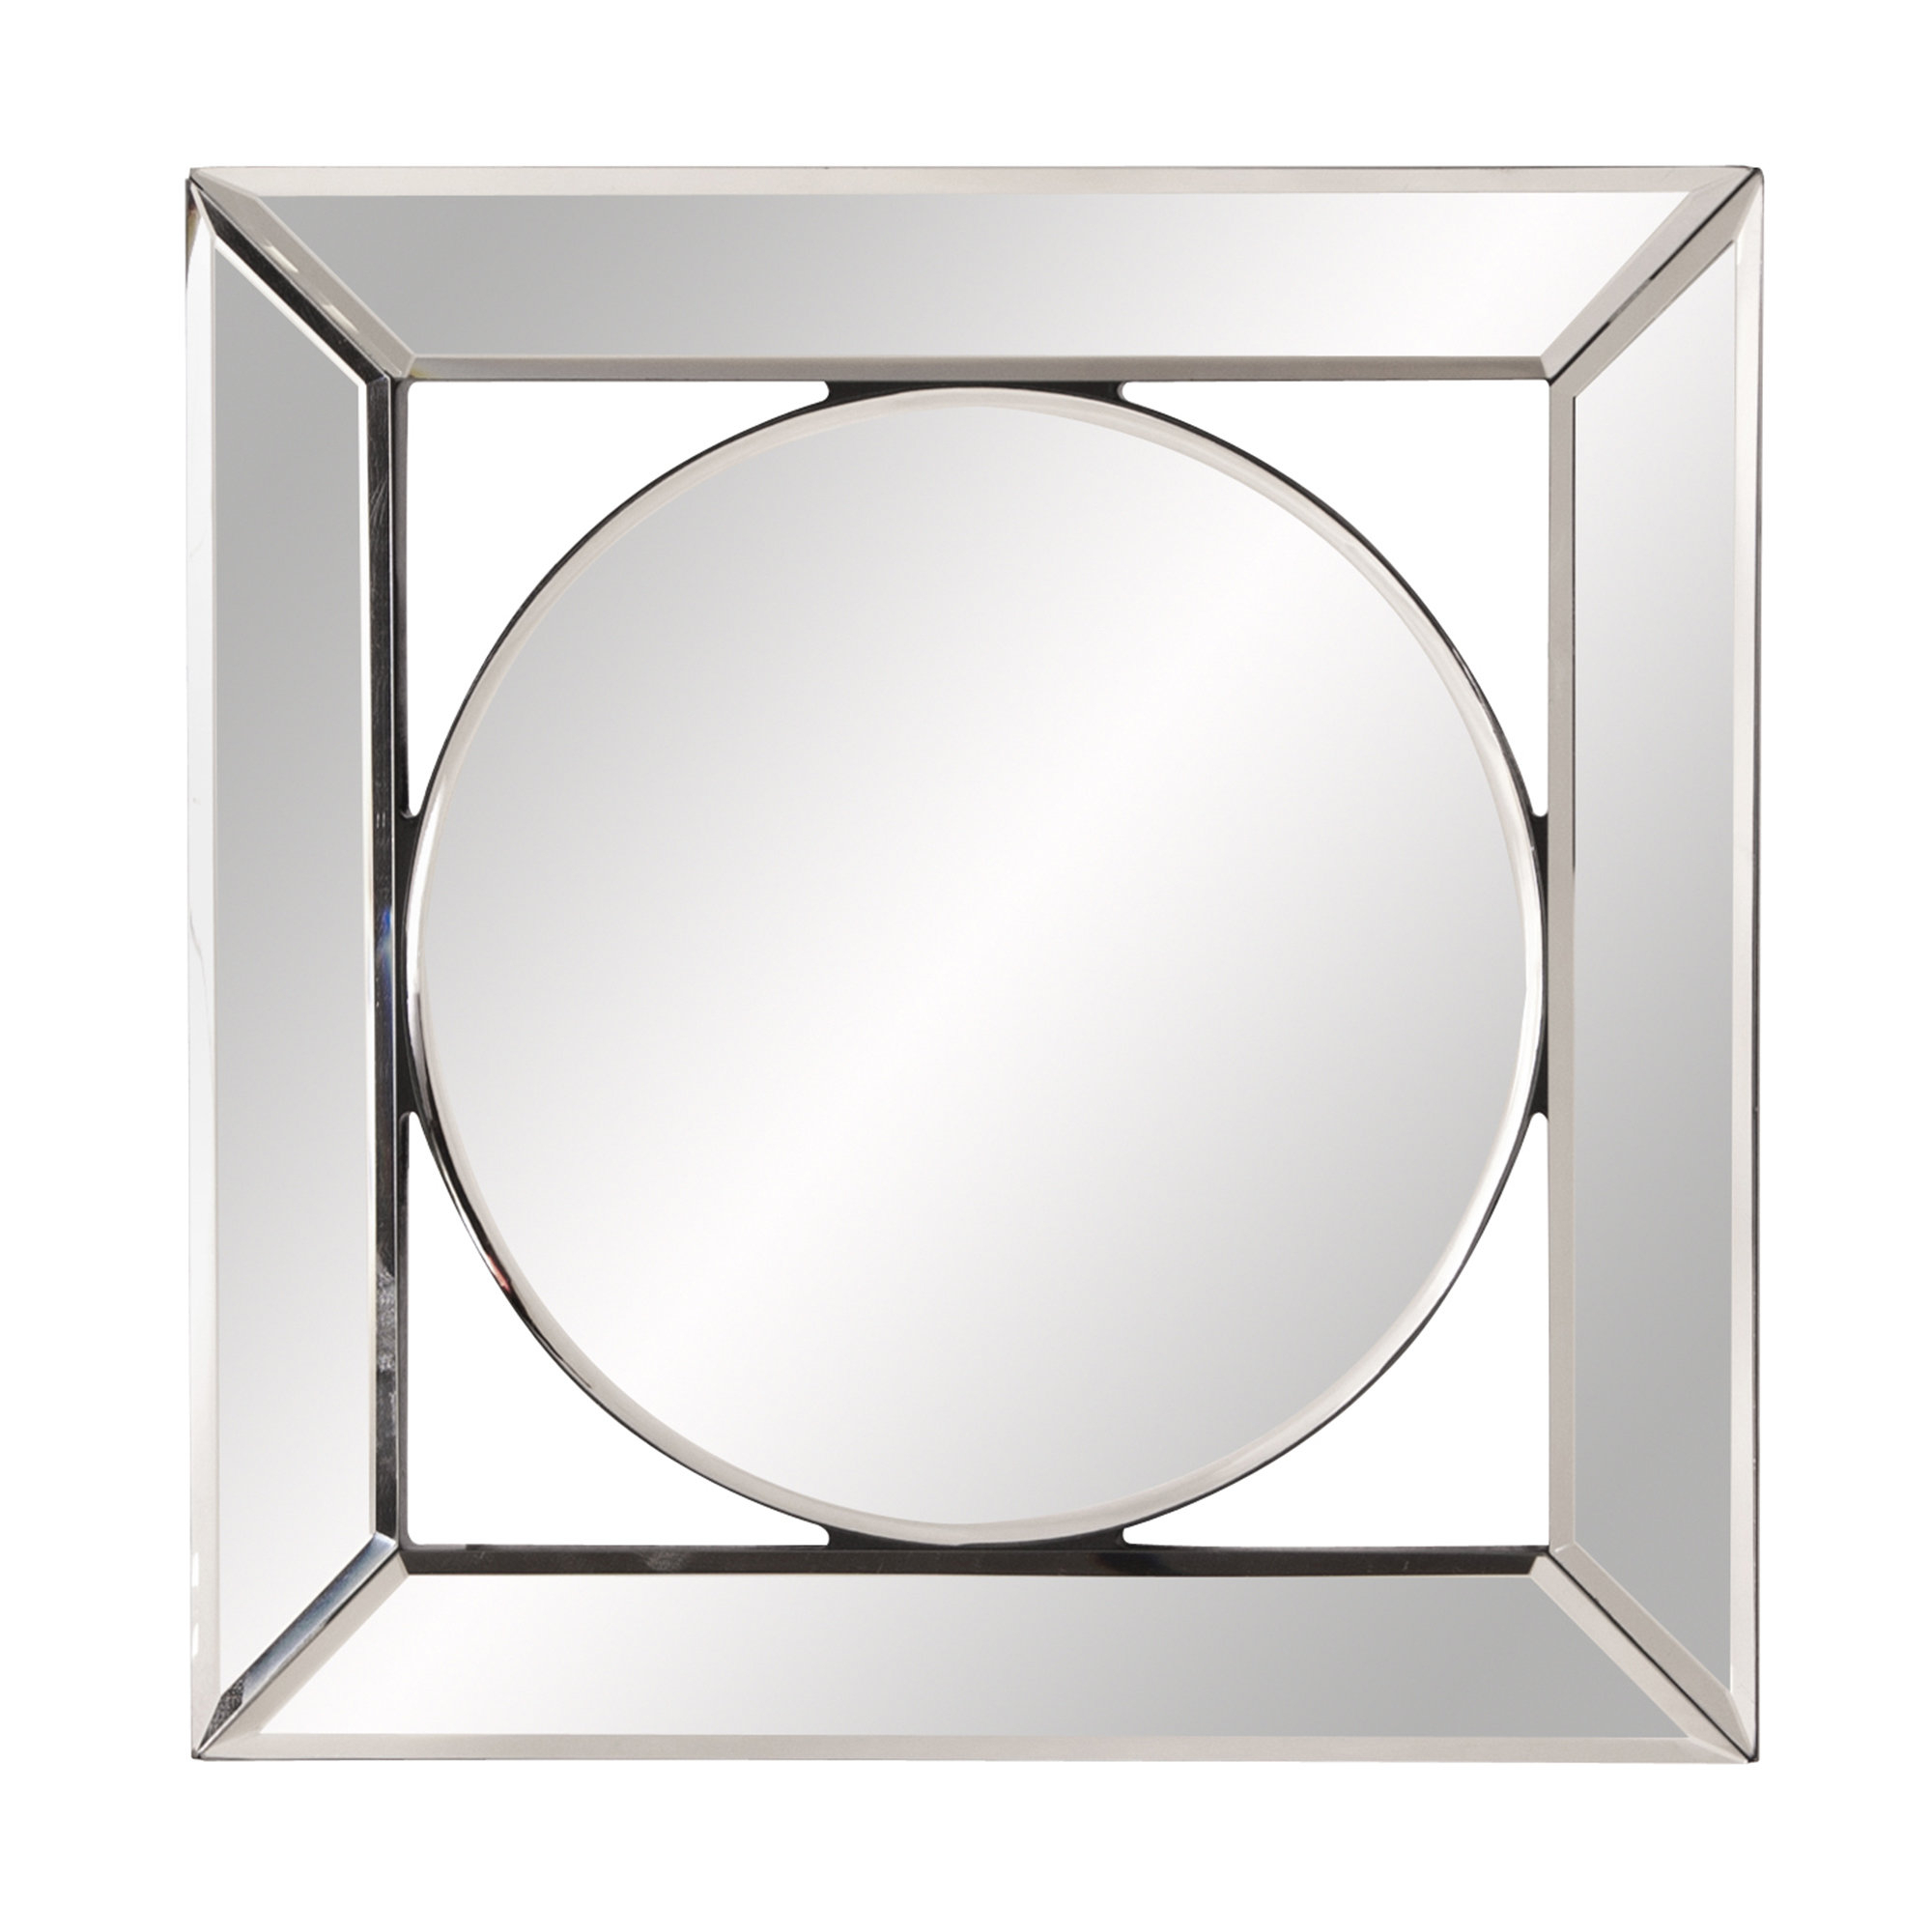 Kayden Accent Mirrors Inside Well Known Square Hanging Accent Mirror (Gallery 20 of 20)